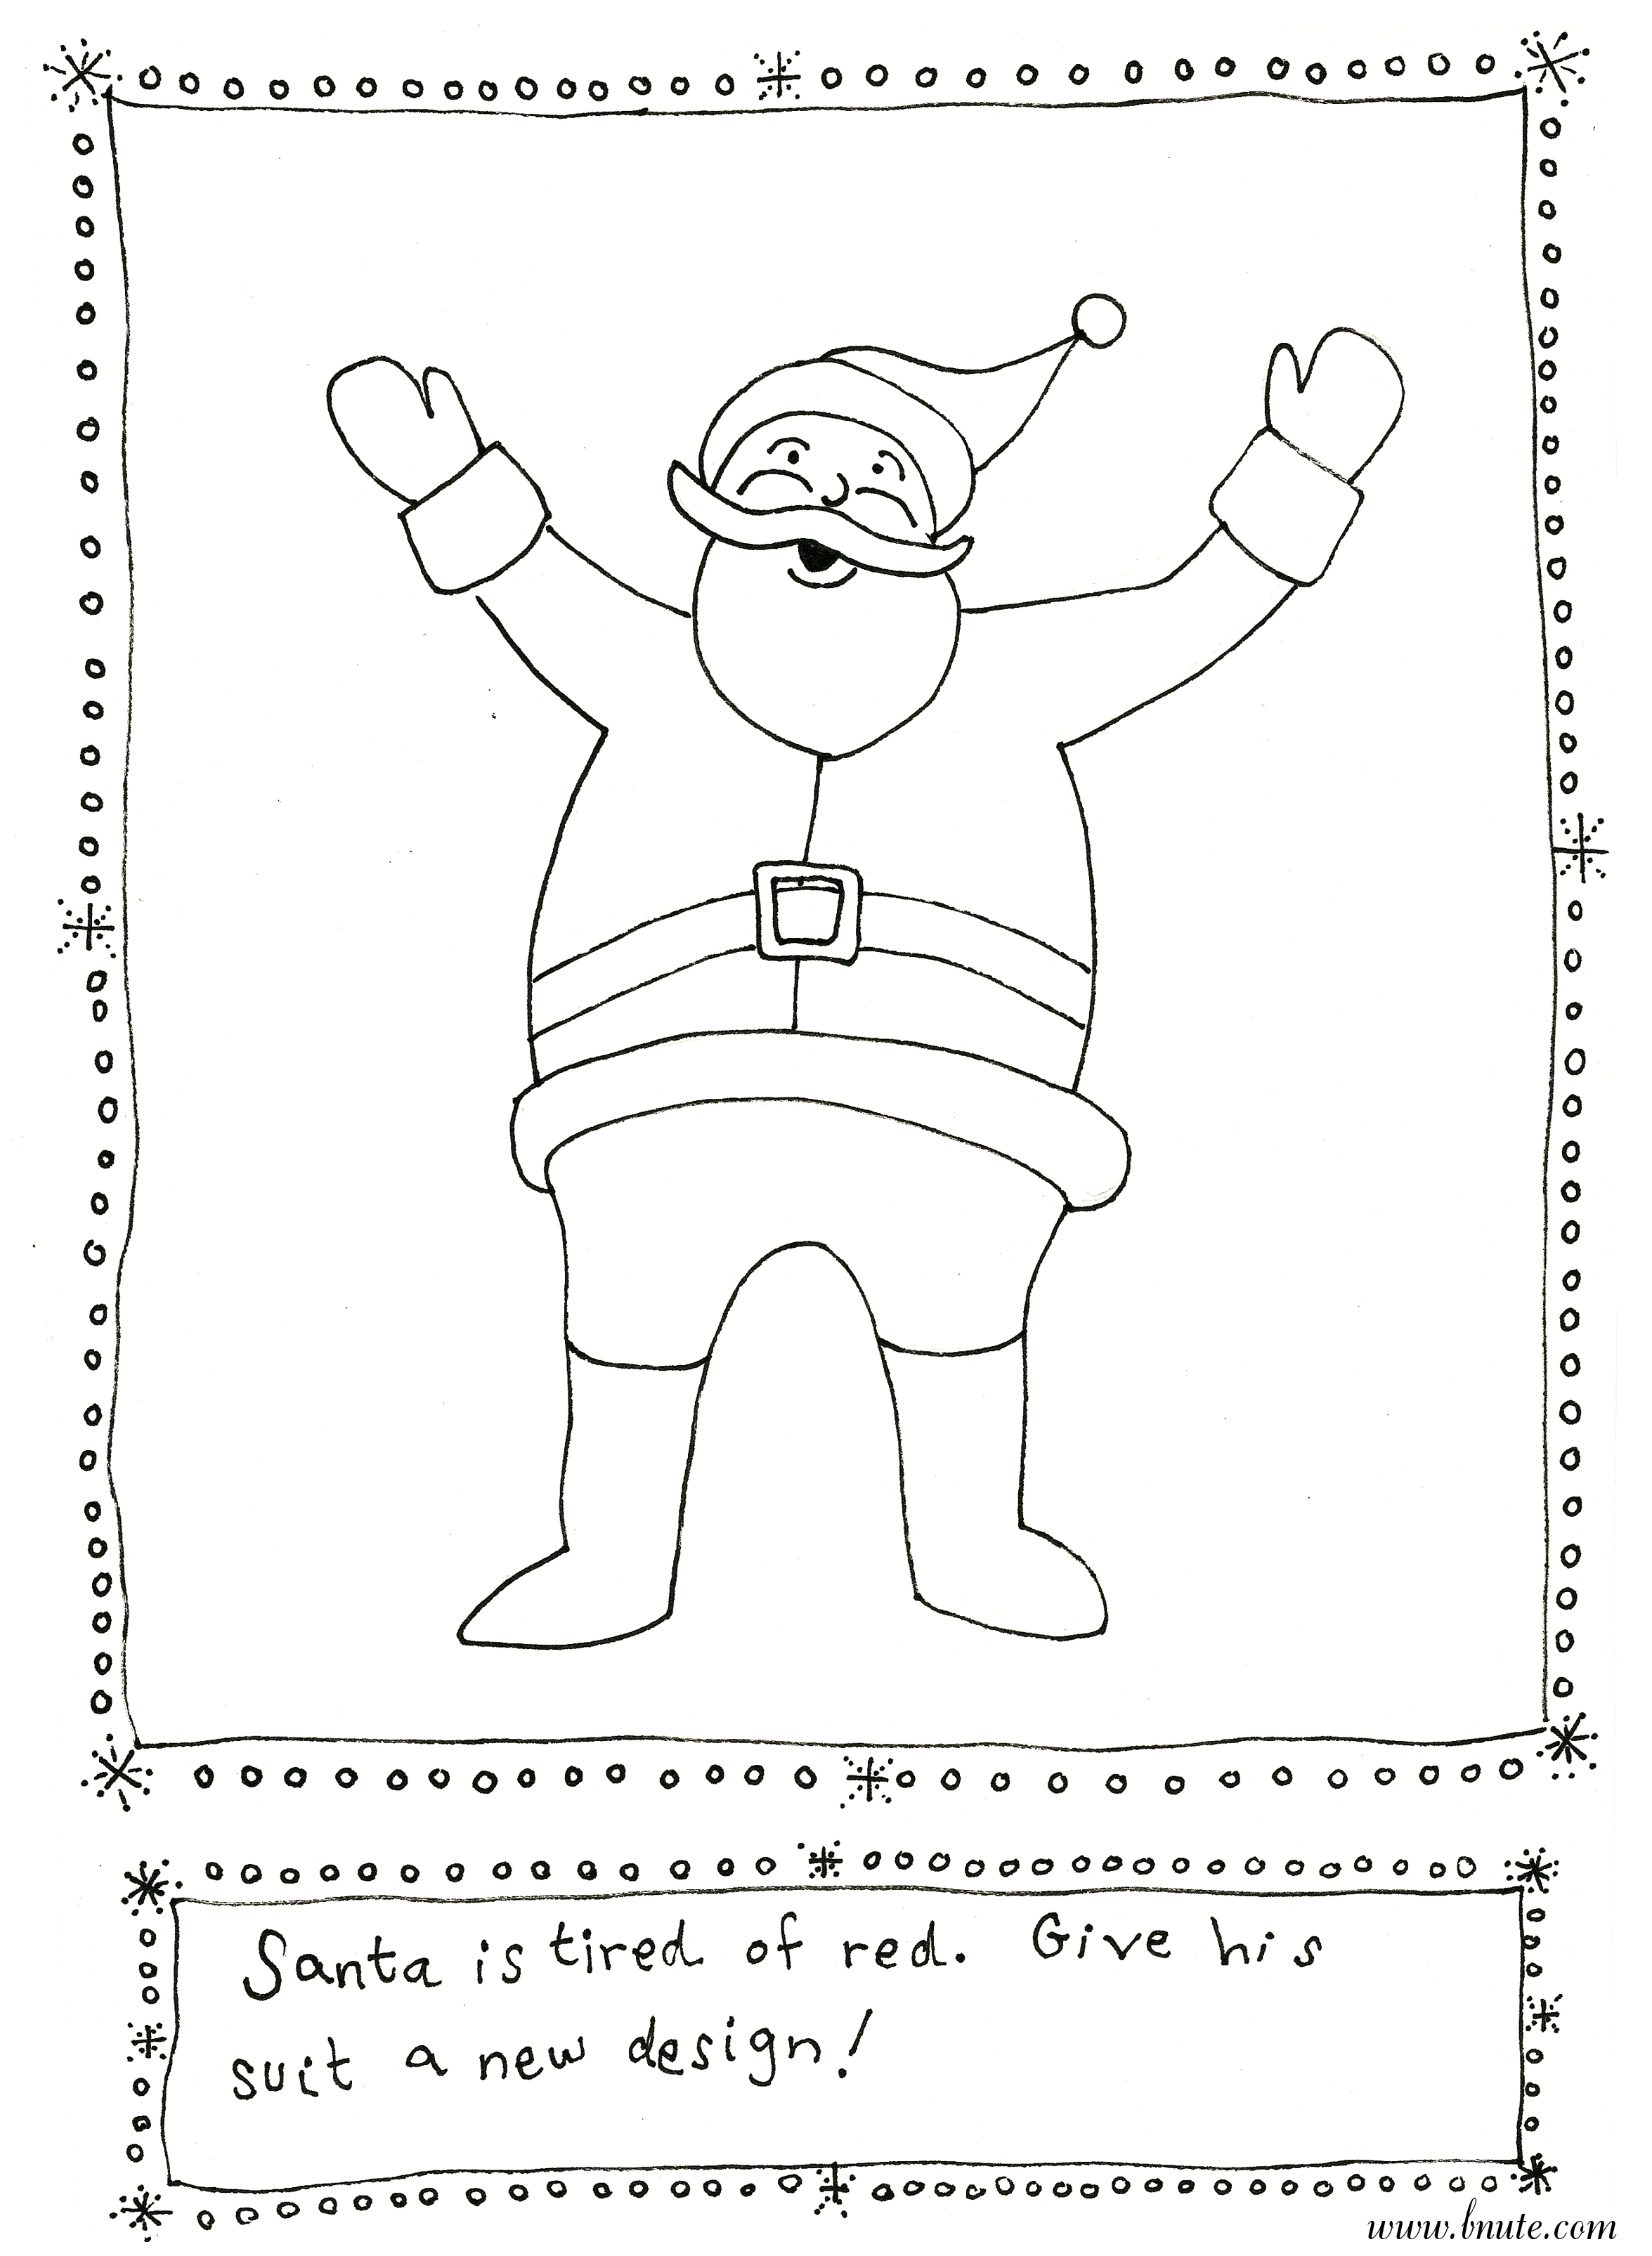 More Christmas Printable Art Activities - Santa's Outfit Redesign and ...